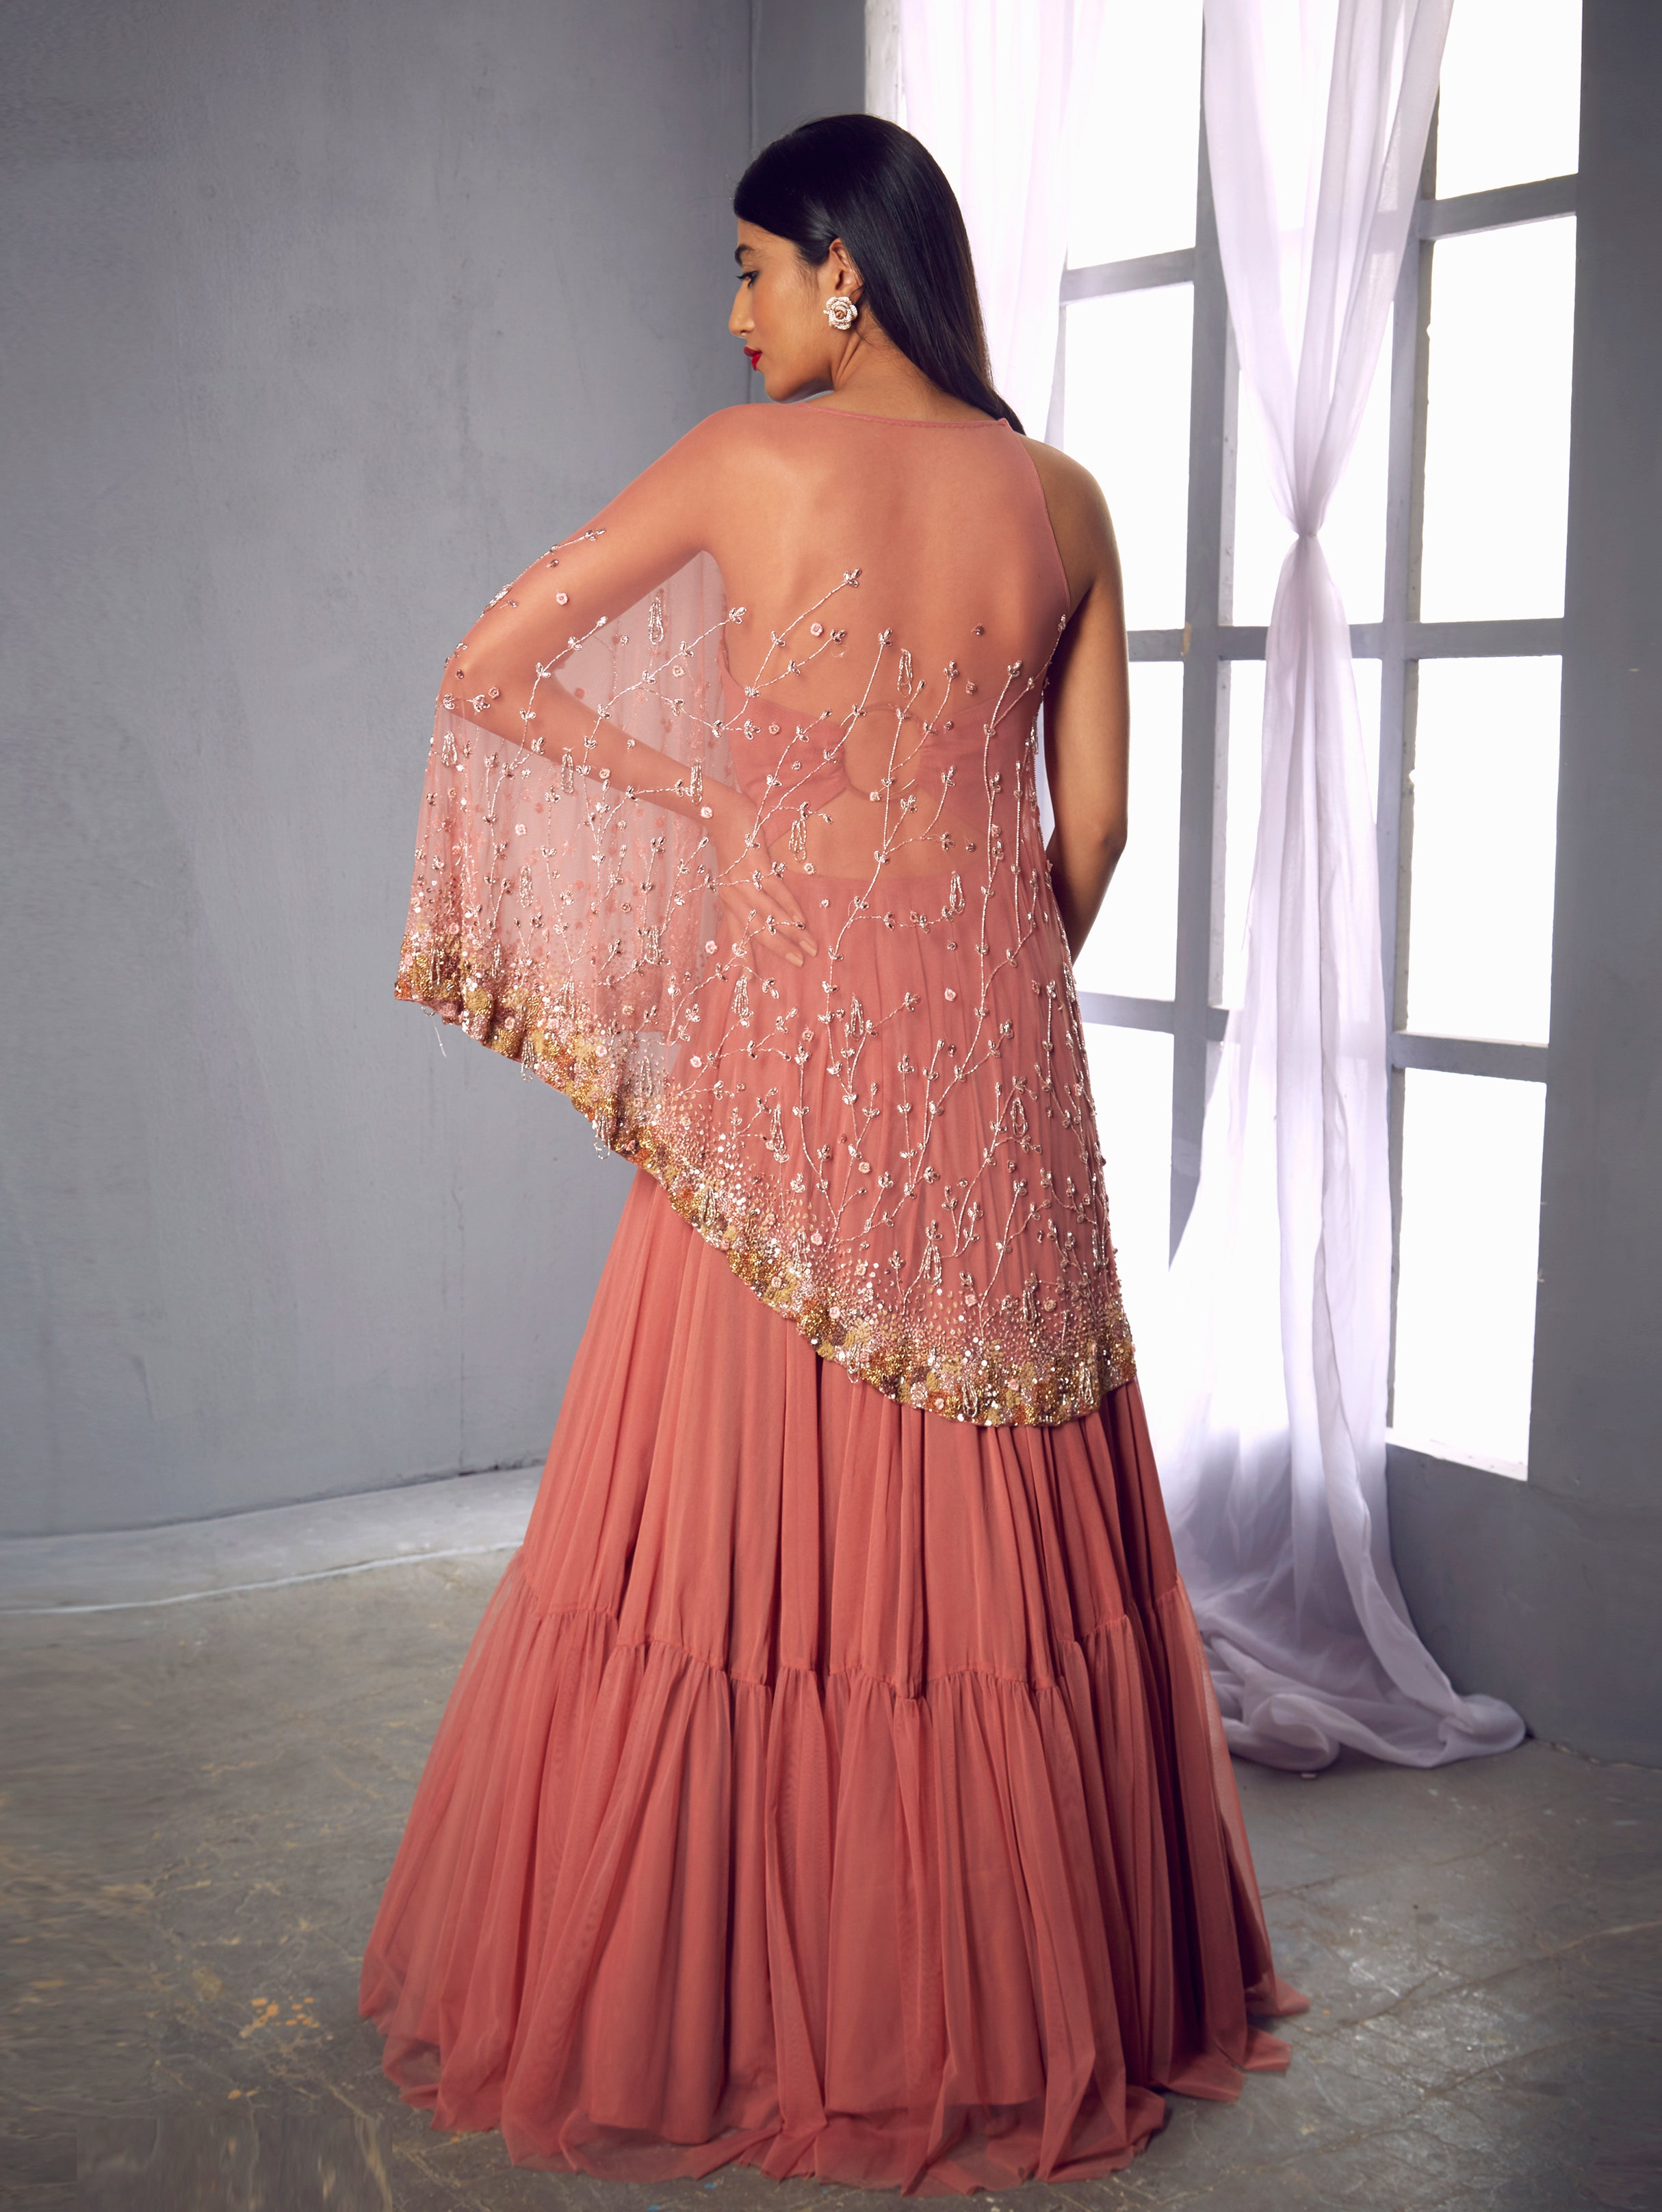 Shloka Khialani Rose Pink Cape Gown